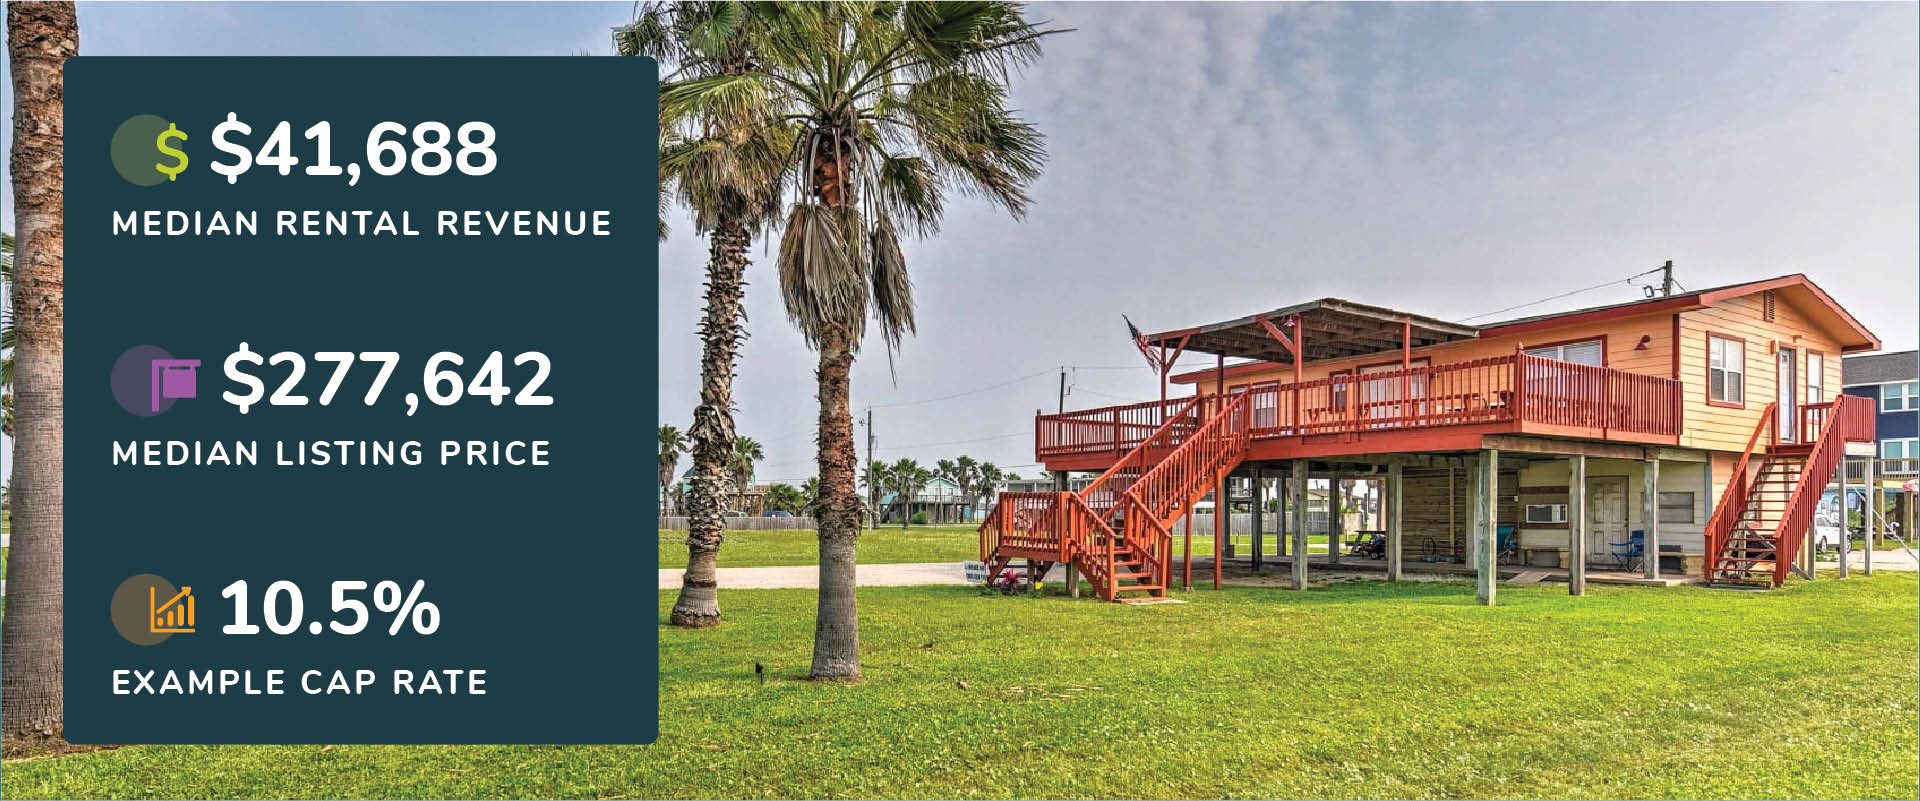 Graphic showing Surfside Beach, Texas median rental revenue, listing price, and cap rate with a picture of a rental property with deck and palm trees.